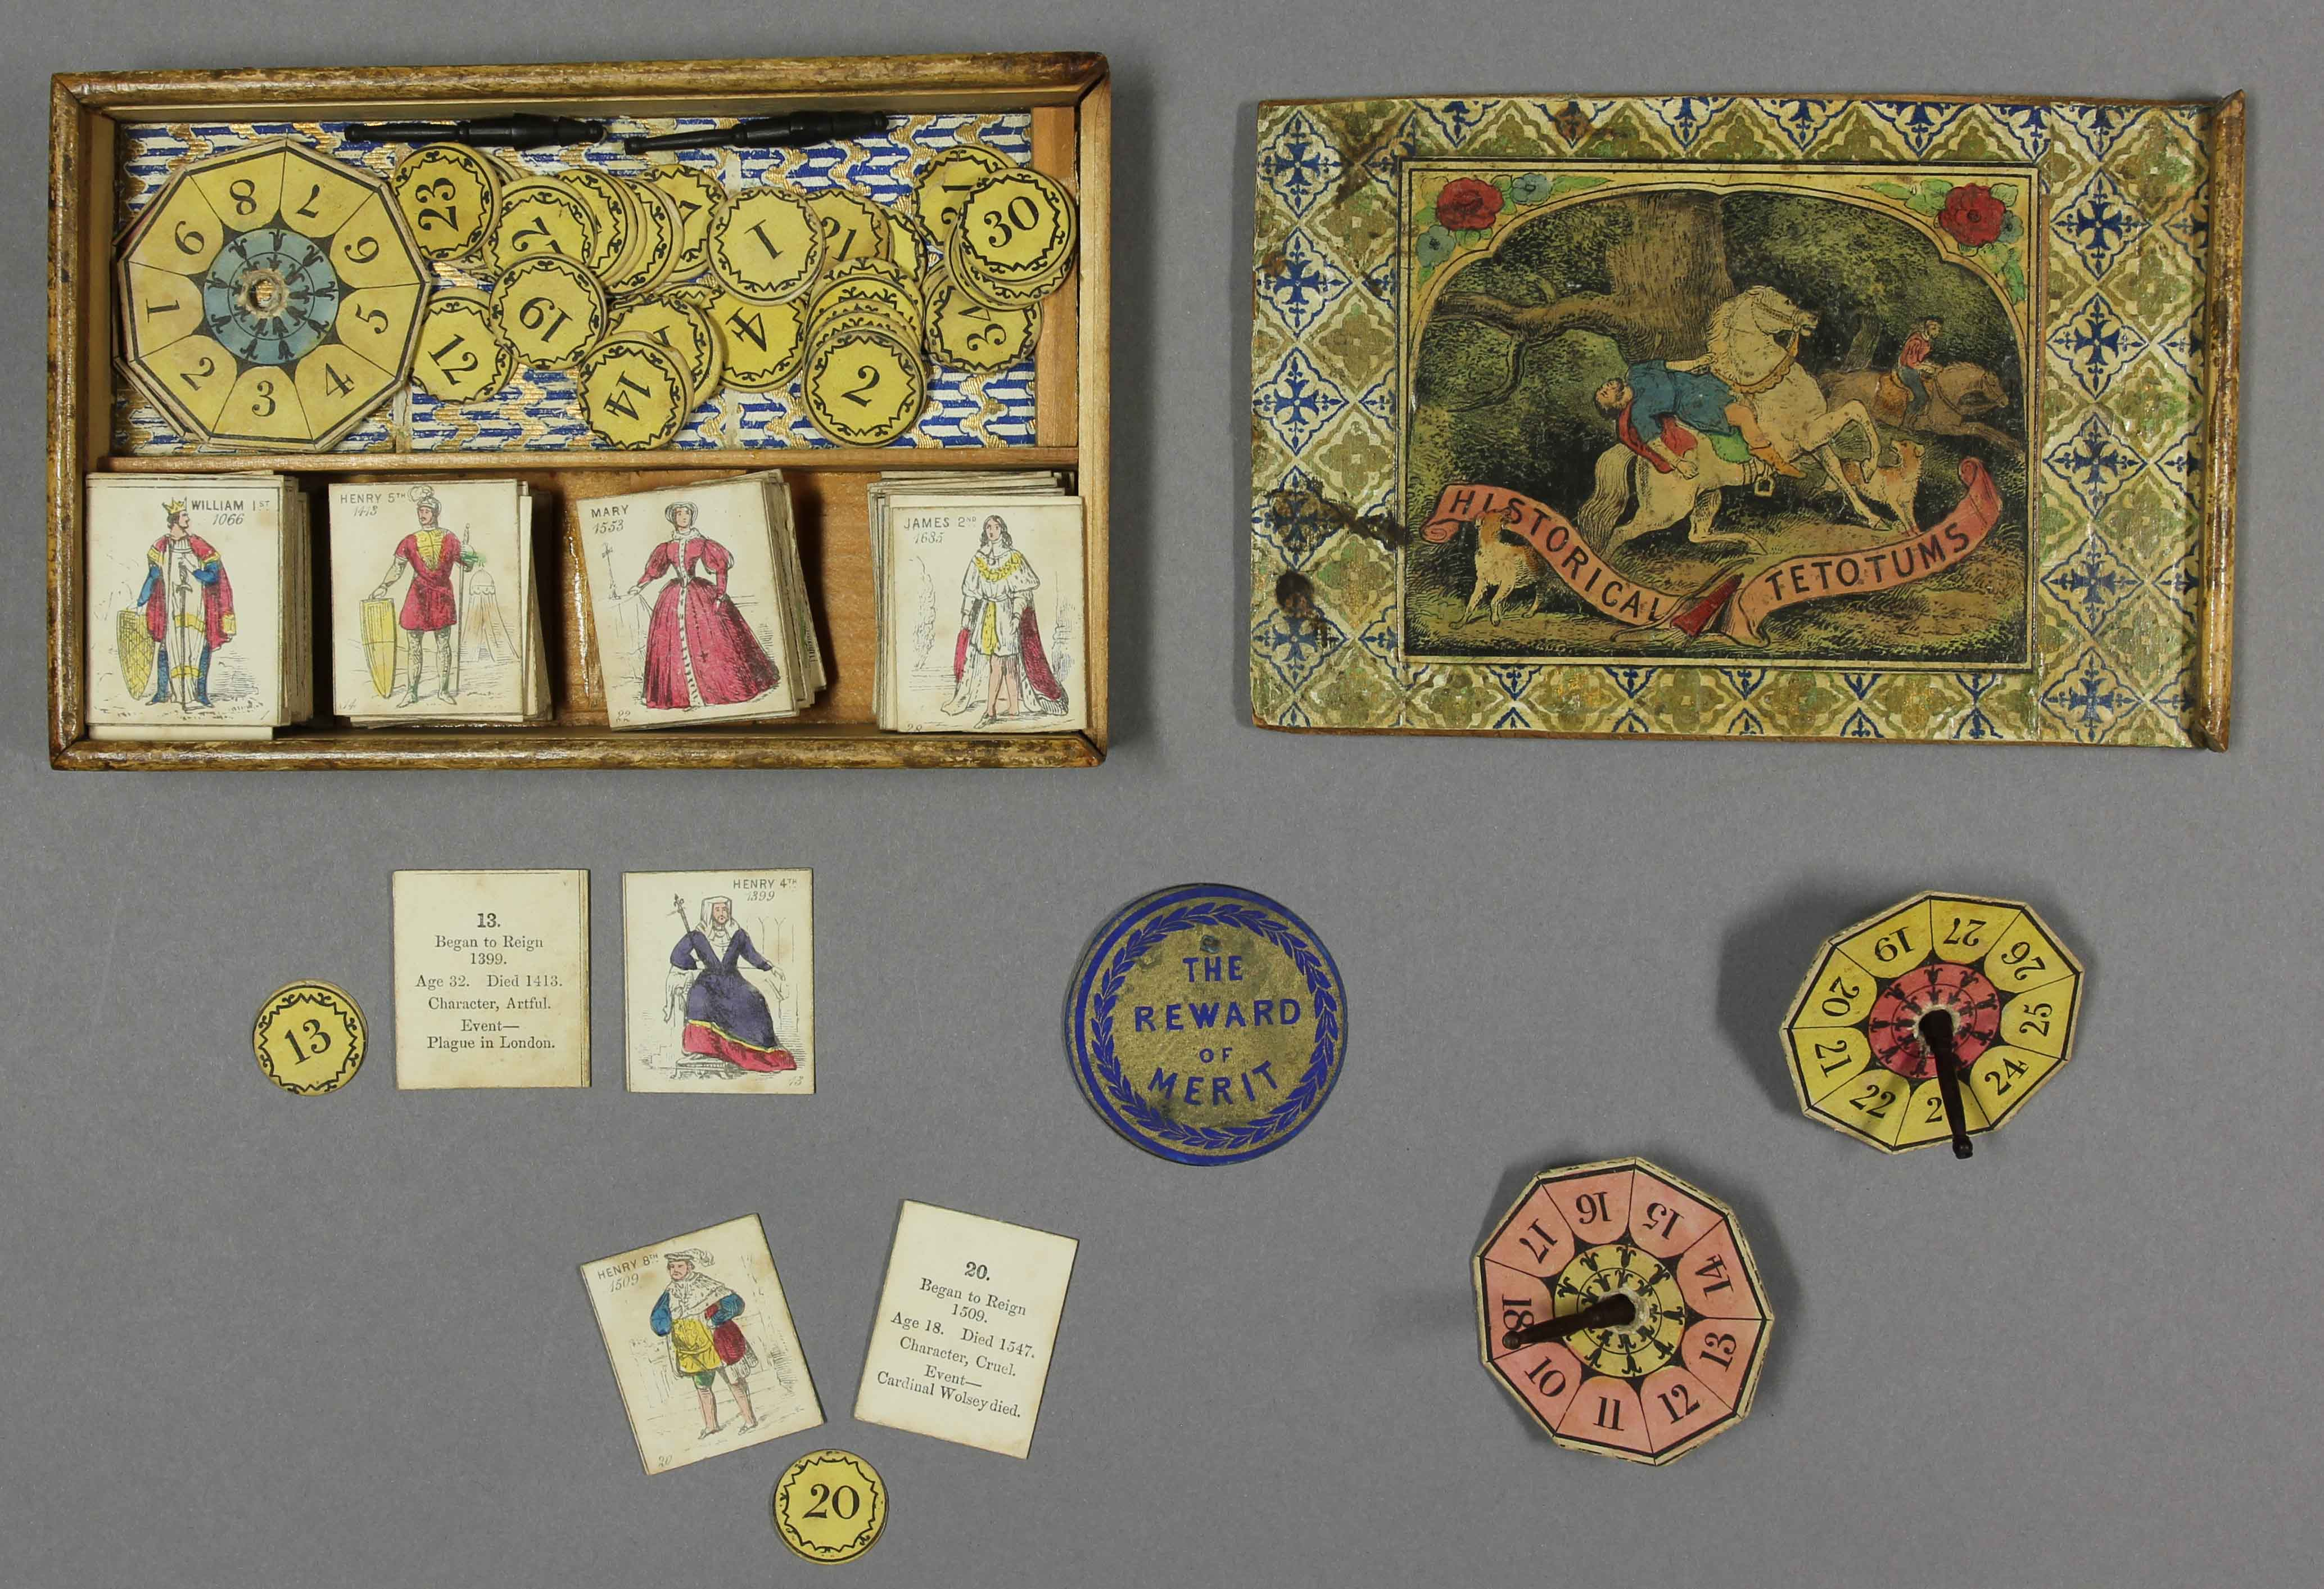 The game Historical Tetotums showing box with cards, pieces and tetotums